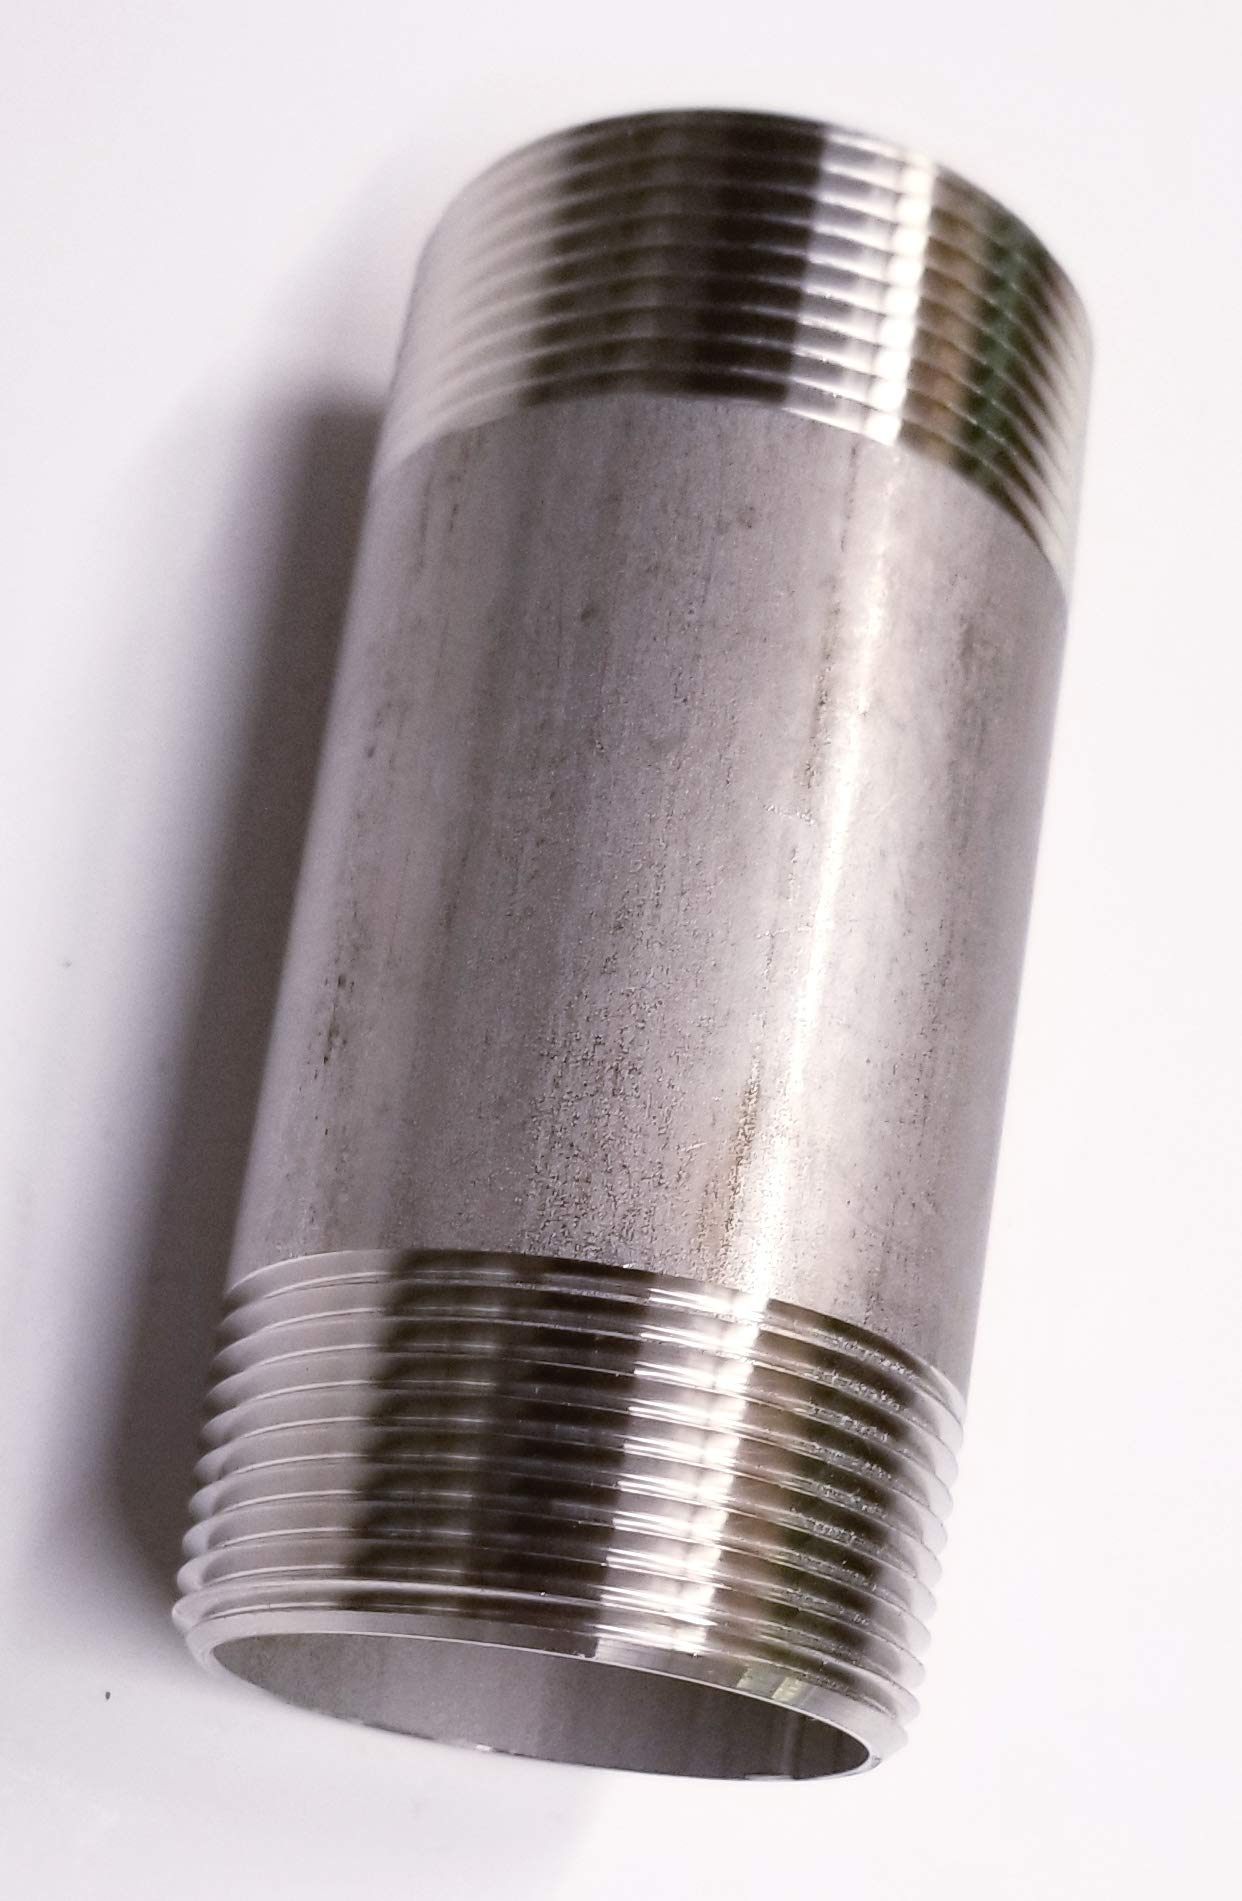 TIB Stainless Steel Pipe Nipple 1'' Npt x 18'' Long SCH 40 Pipe Male Thread Fast Shipping